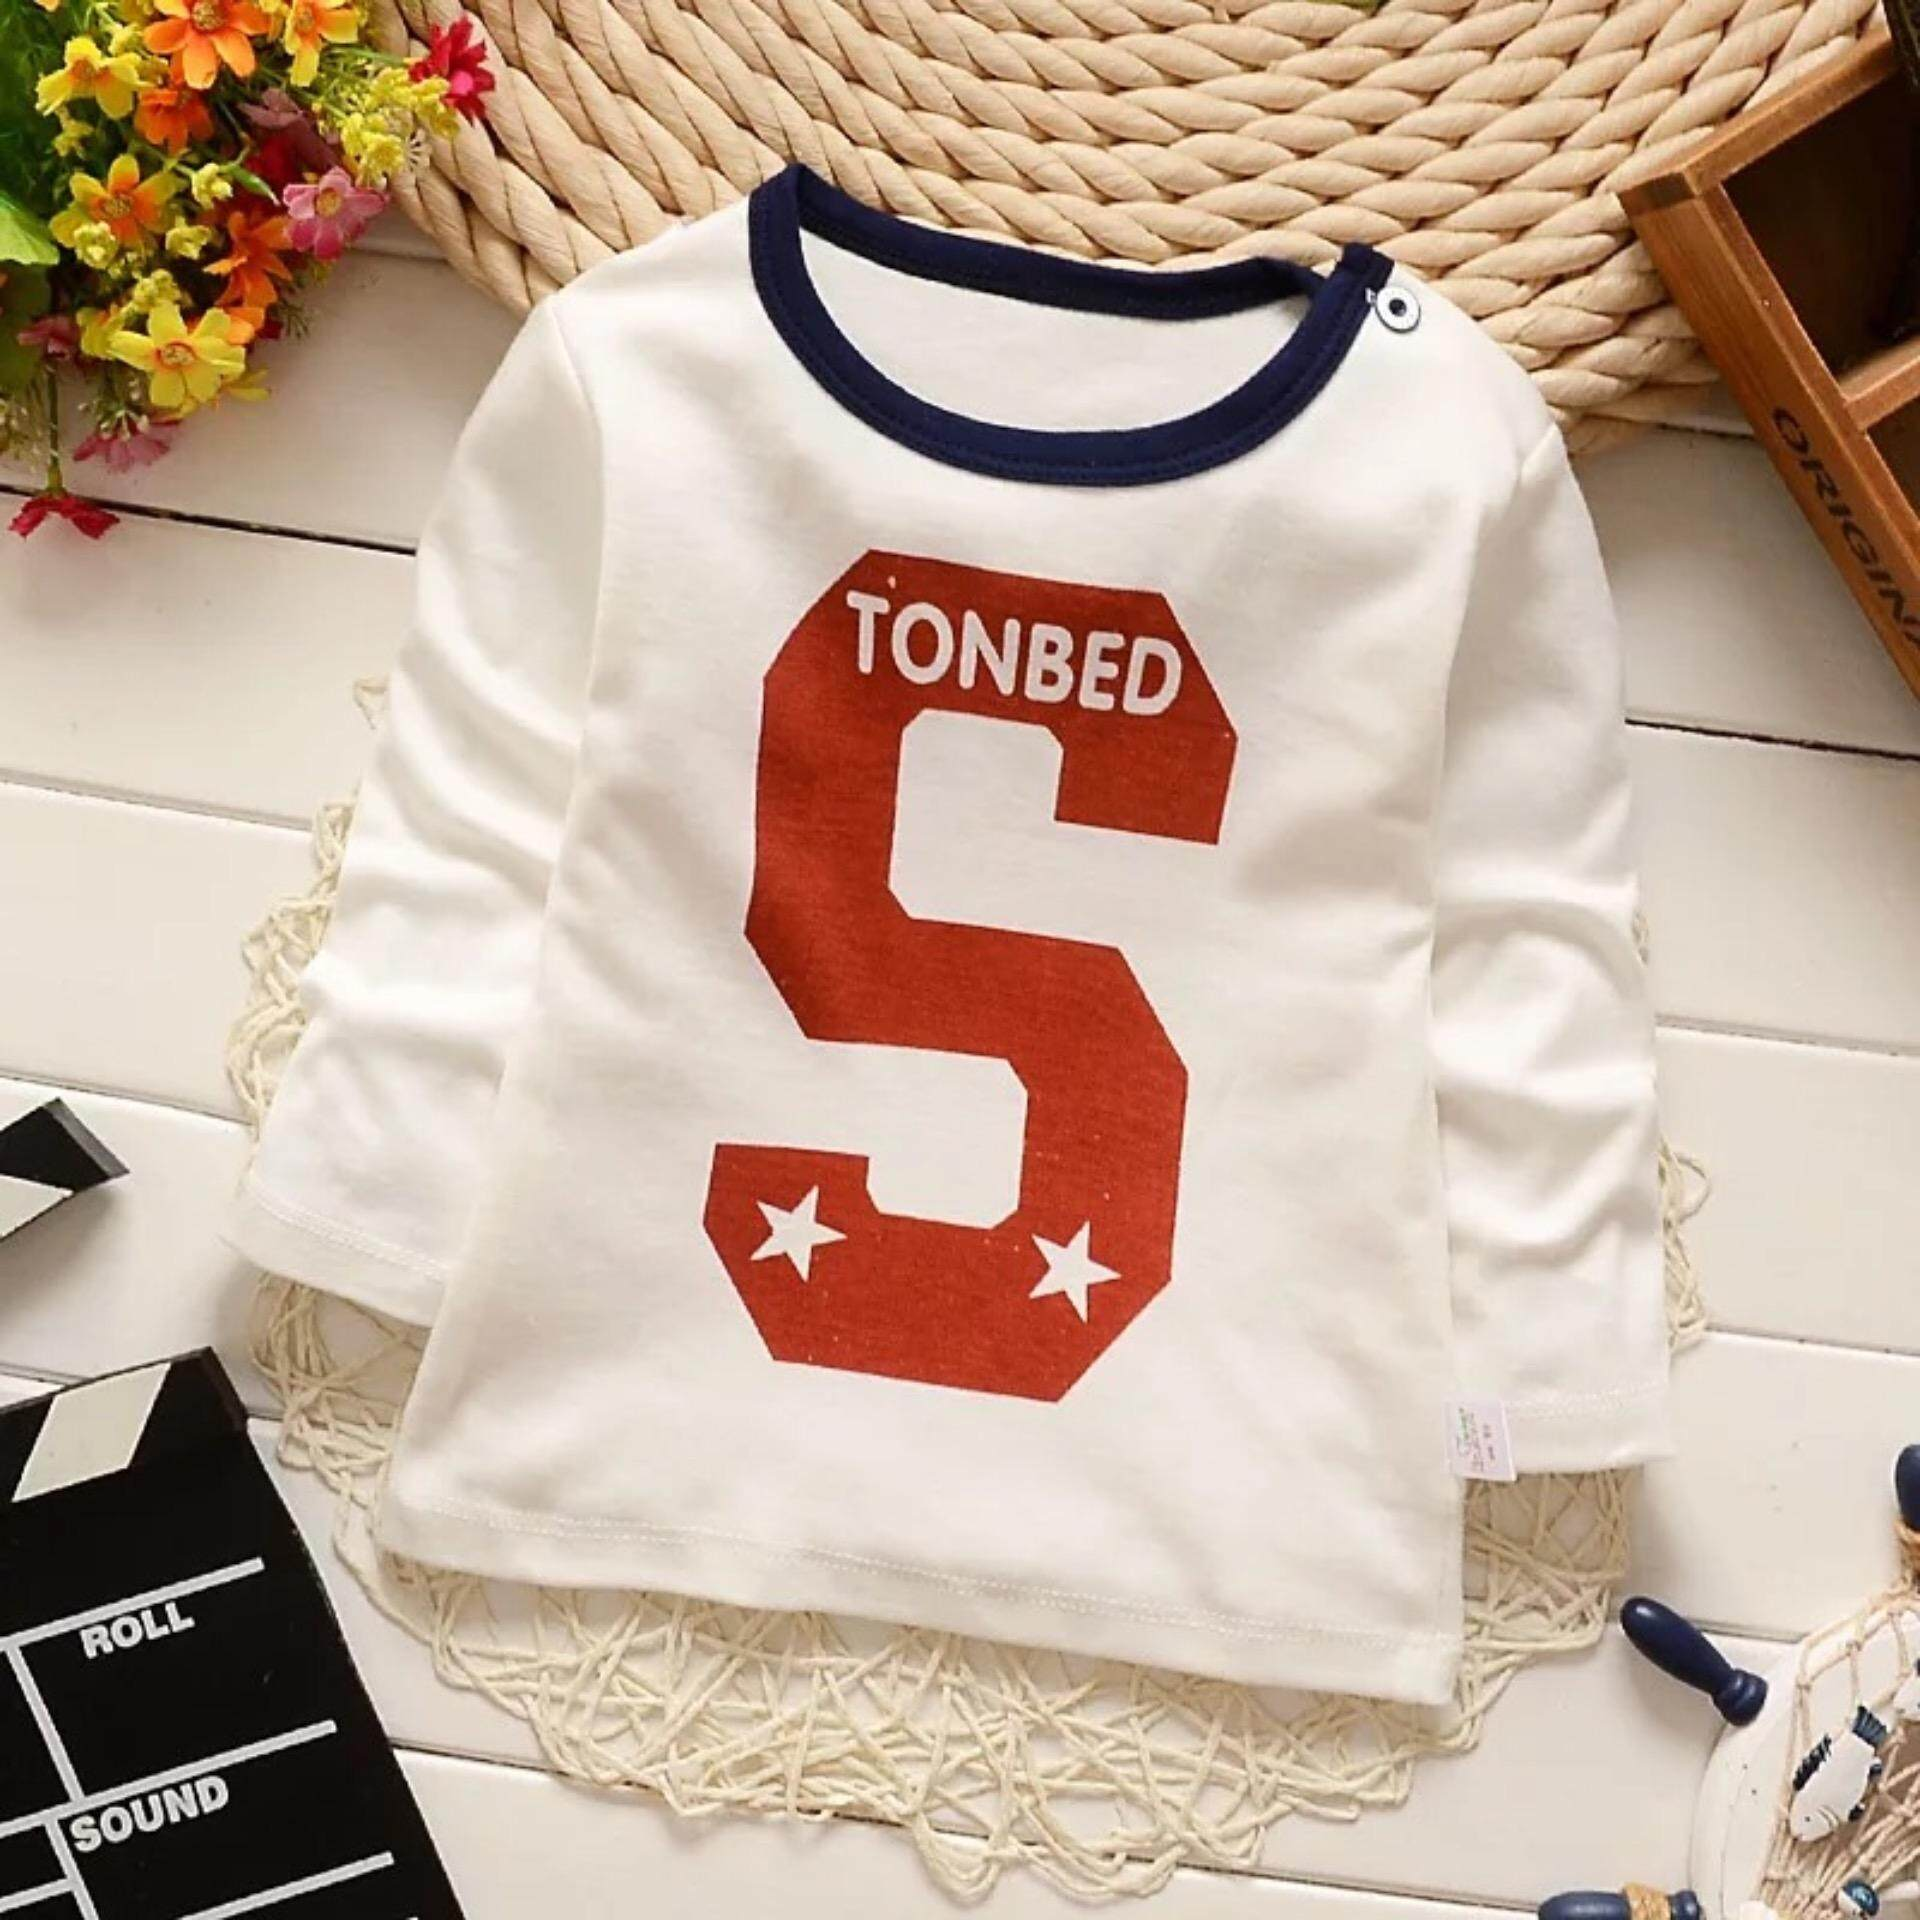 SS, Baby infant toddler kid cute long sleeve t-shirt, size S, M, L